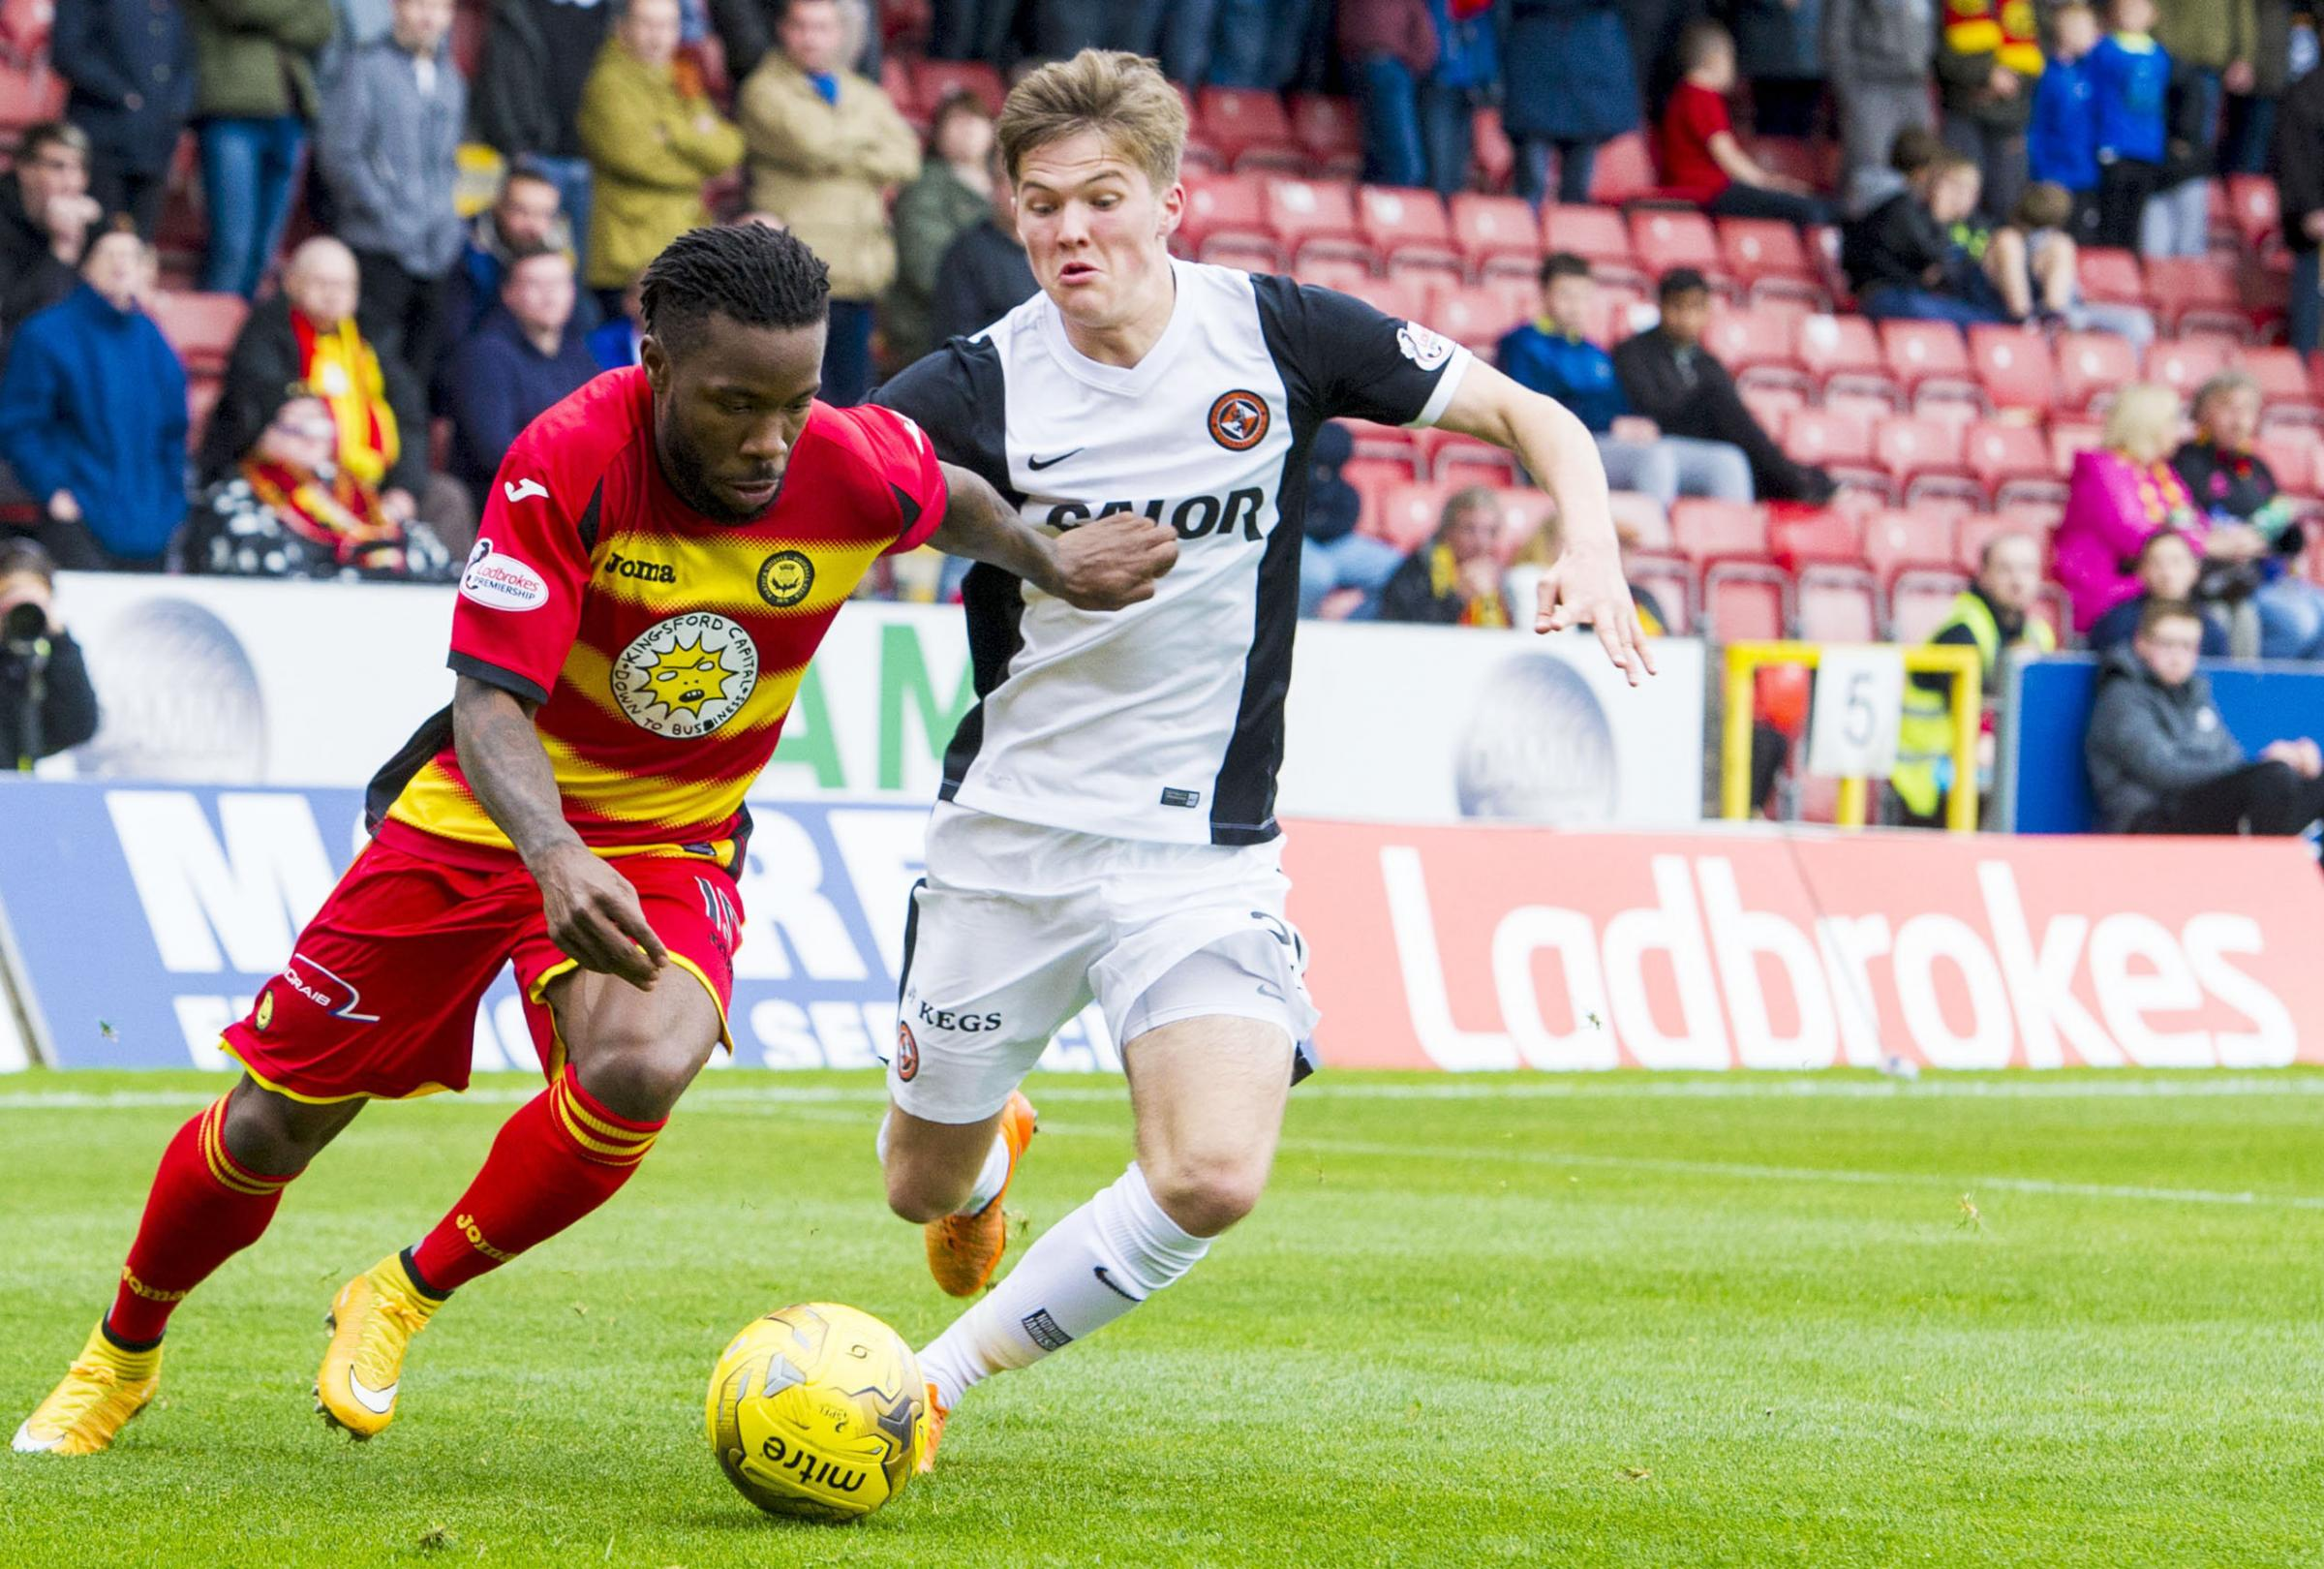 Dumbuya returns to action for Partick Thistle after injury lay-off